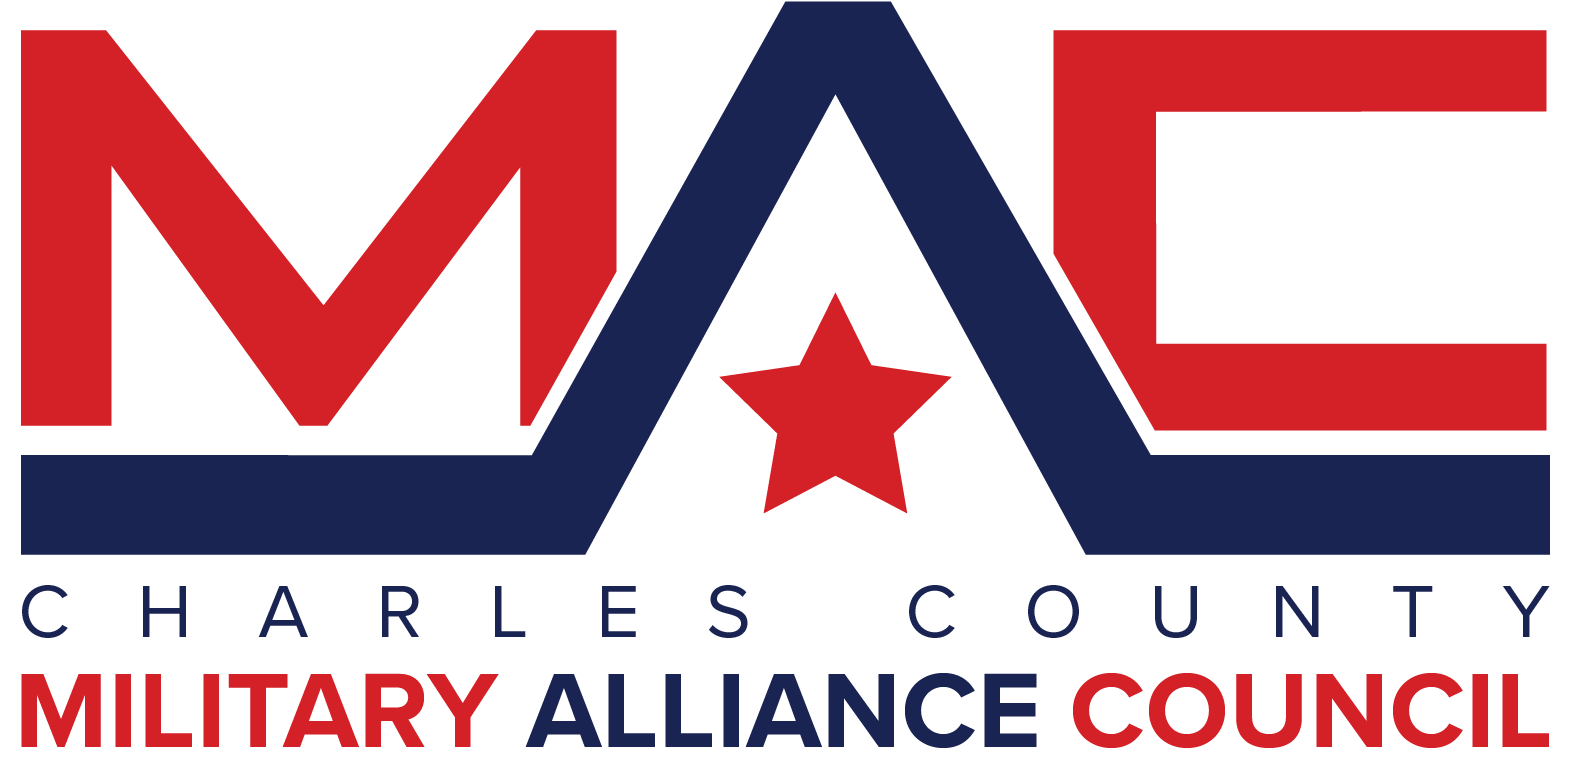 Charles County Military Alliance Council